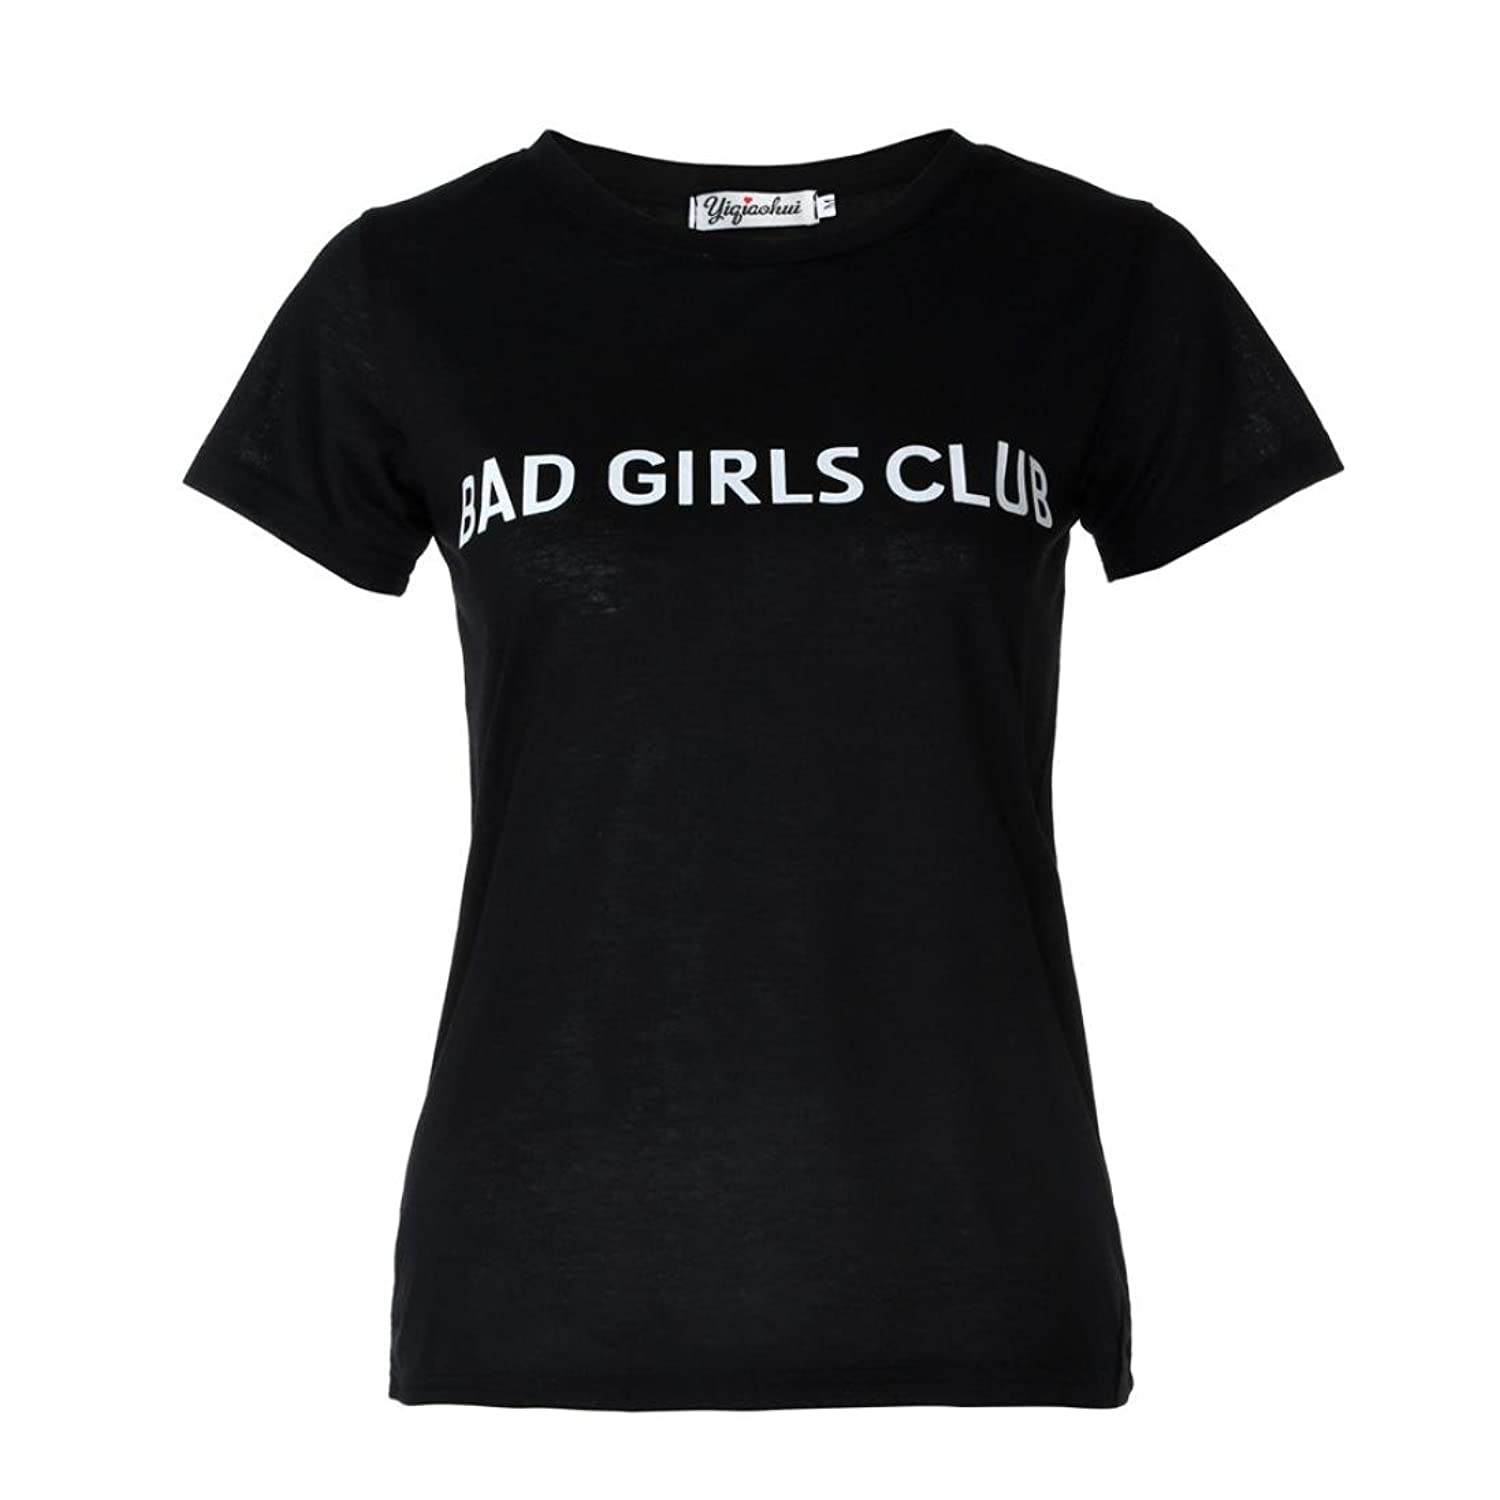 Amazon.com: DondPO Womens Ladies Casual Short Sleeve T Shirts Loose Tops Bad Girls Club Word Printing Loose Blouse: Clothing